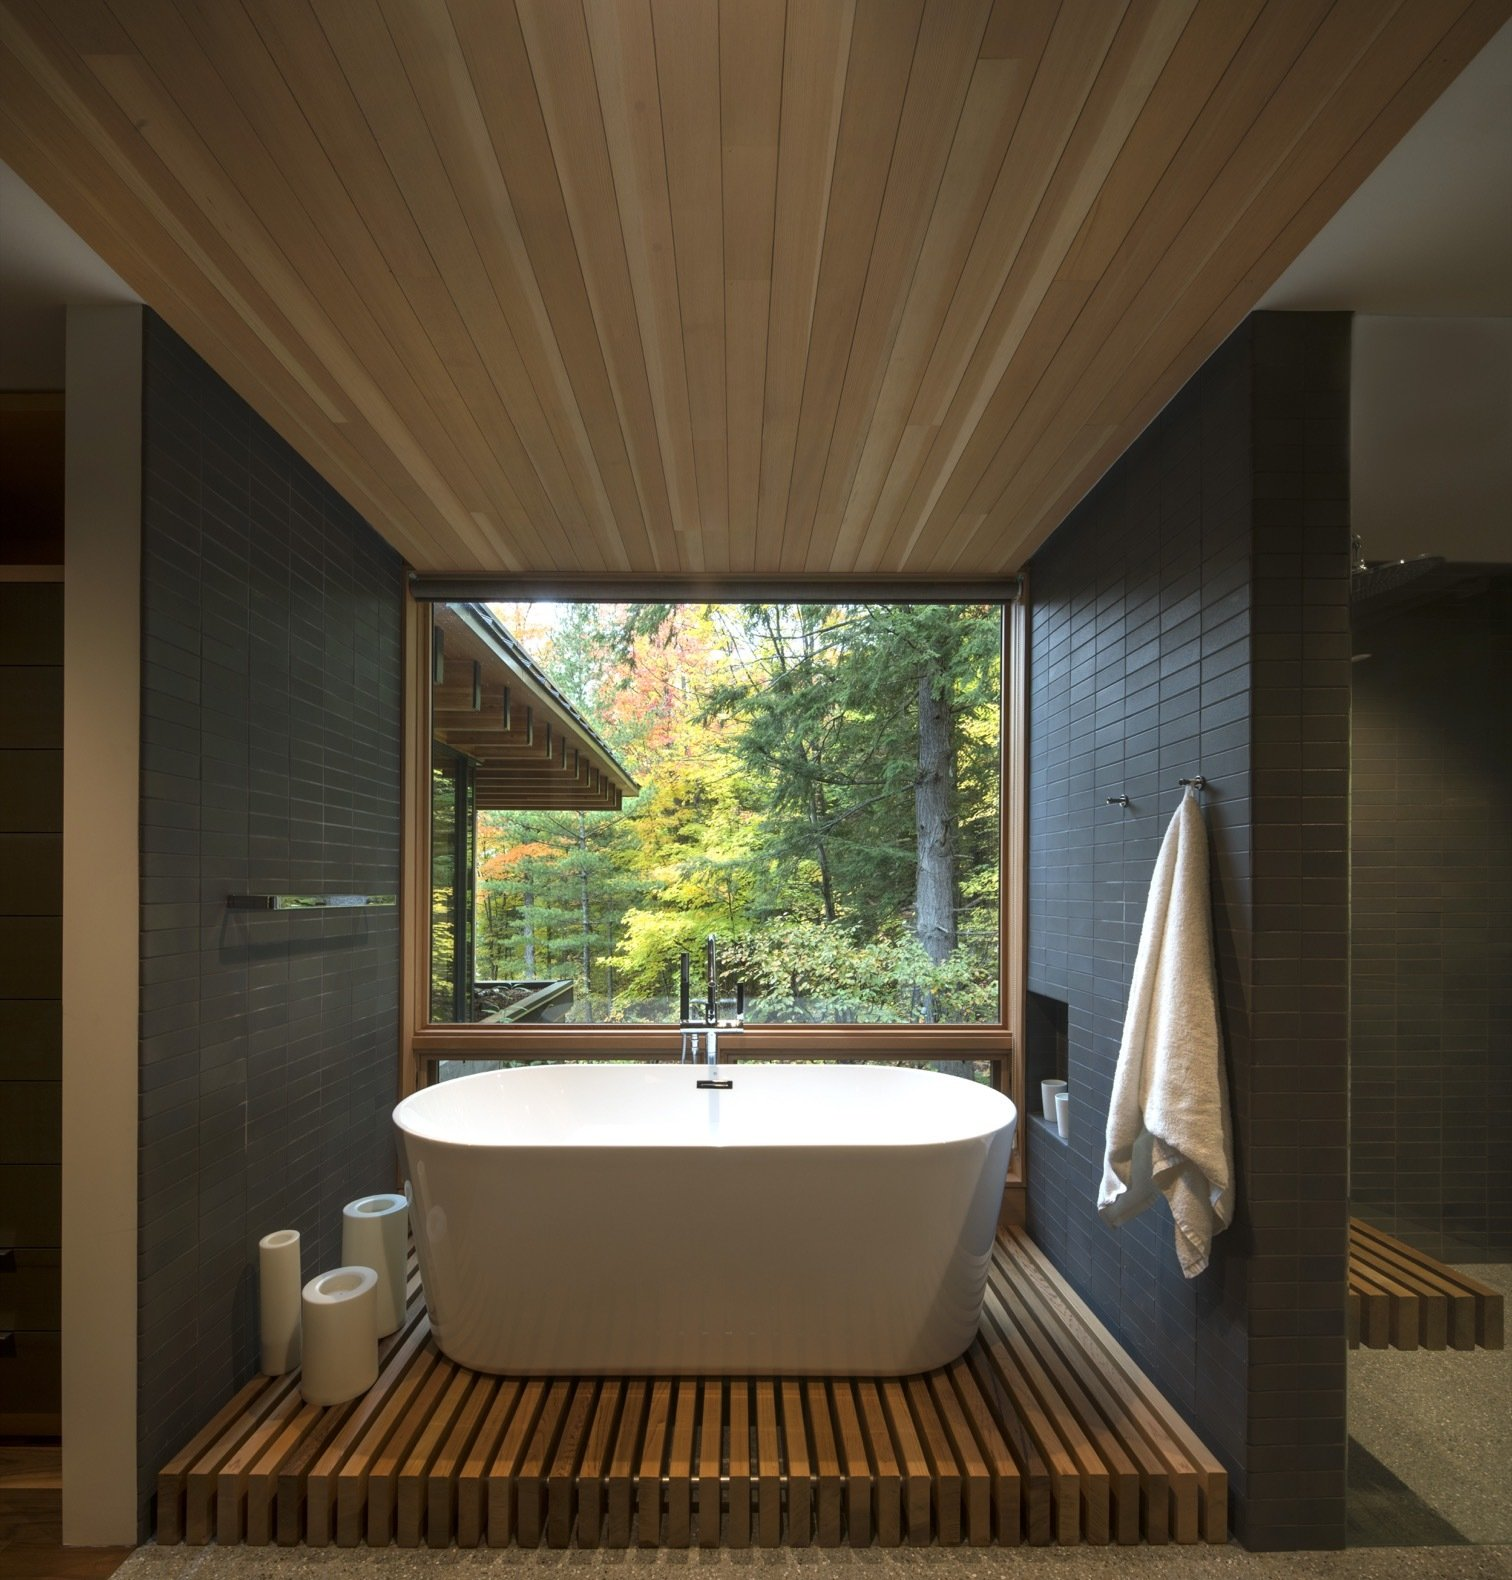 Bath Room, Freestanding Tub, Terrazzo Floor, and Soaking Tub The master suite opens to a bathroom with soaking tubs that overlook south-facing views.    Photo 13 of 16 in This Award-Winning Cabin Is a Relaxing Antidote to City Living